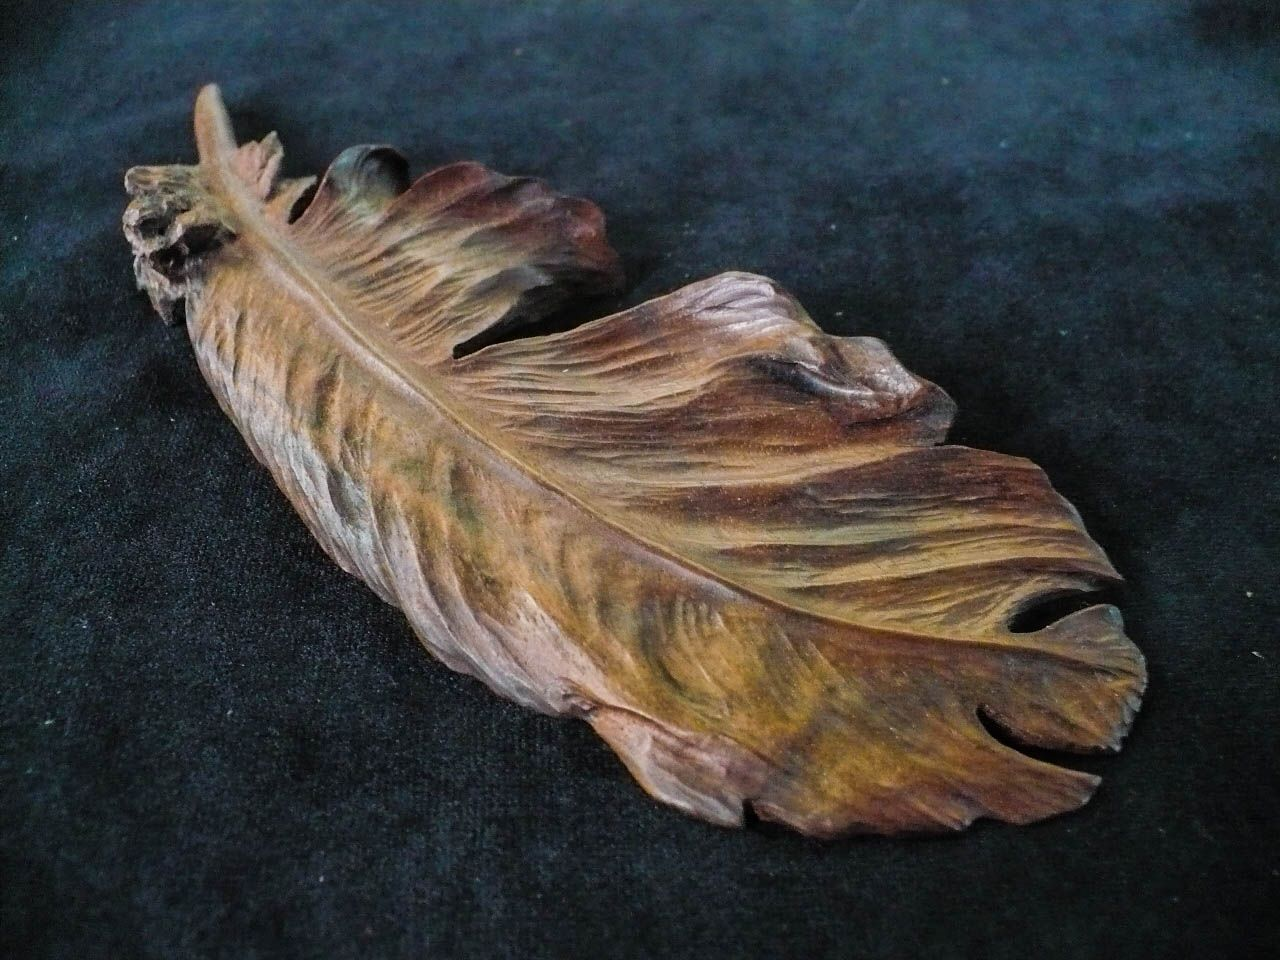 Wood Carving Dremel Wood Carving Class Wood Carving Feathers And Woods